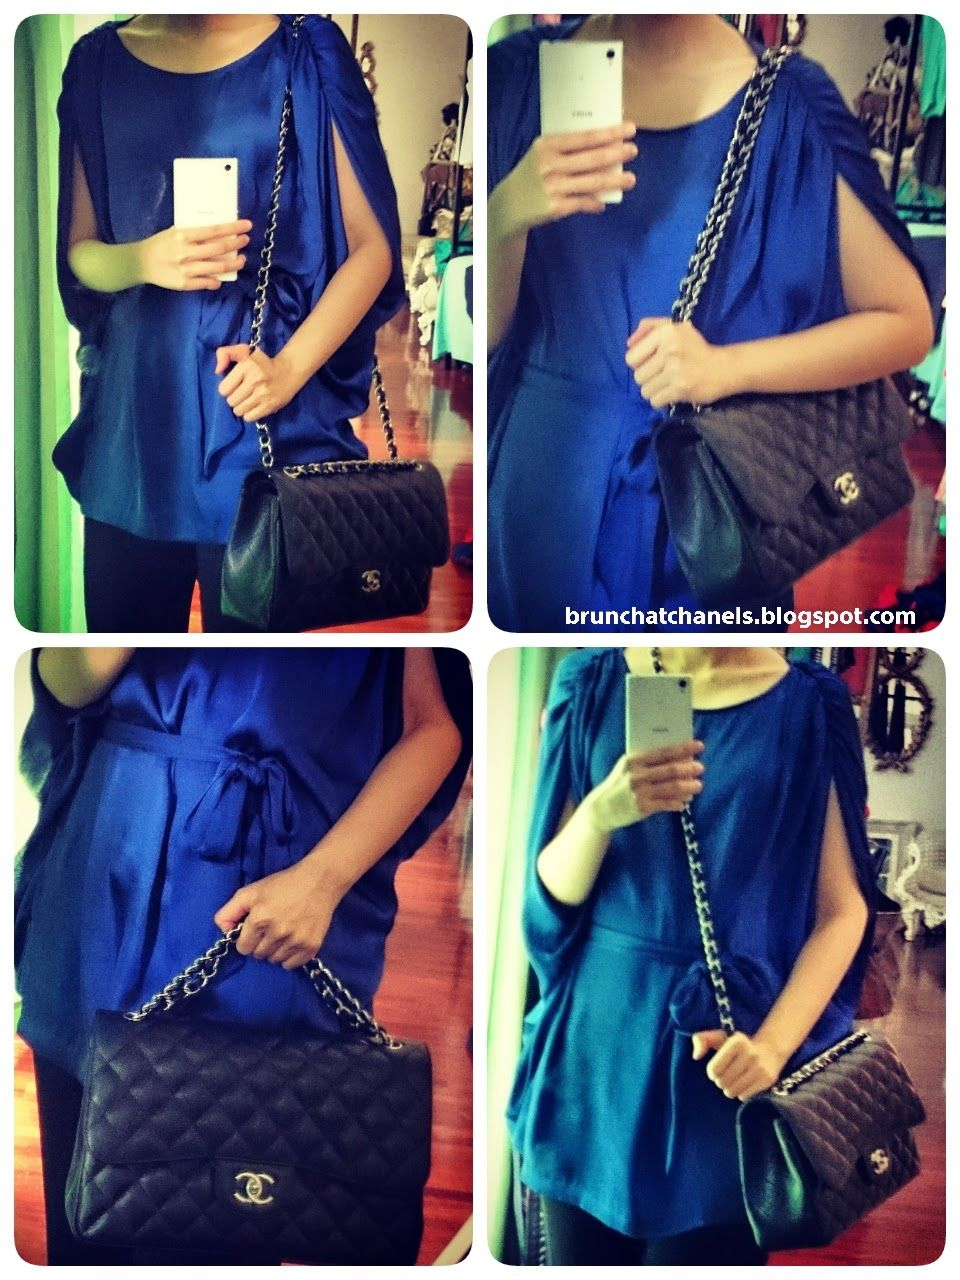 0d911b22328a Brunch At Chanel's: 4 Ways to Wear Chanel Jumbo Flap (strap adjustment tips)